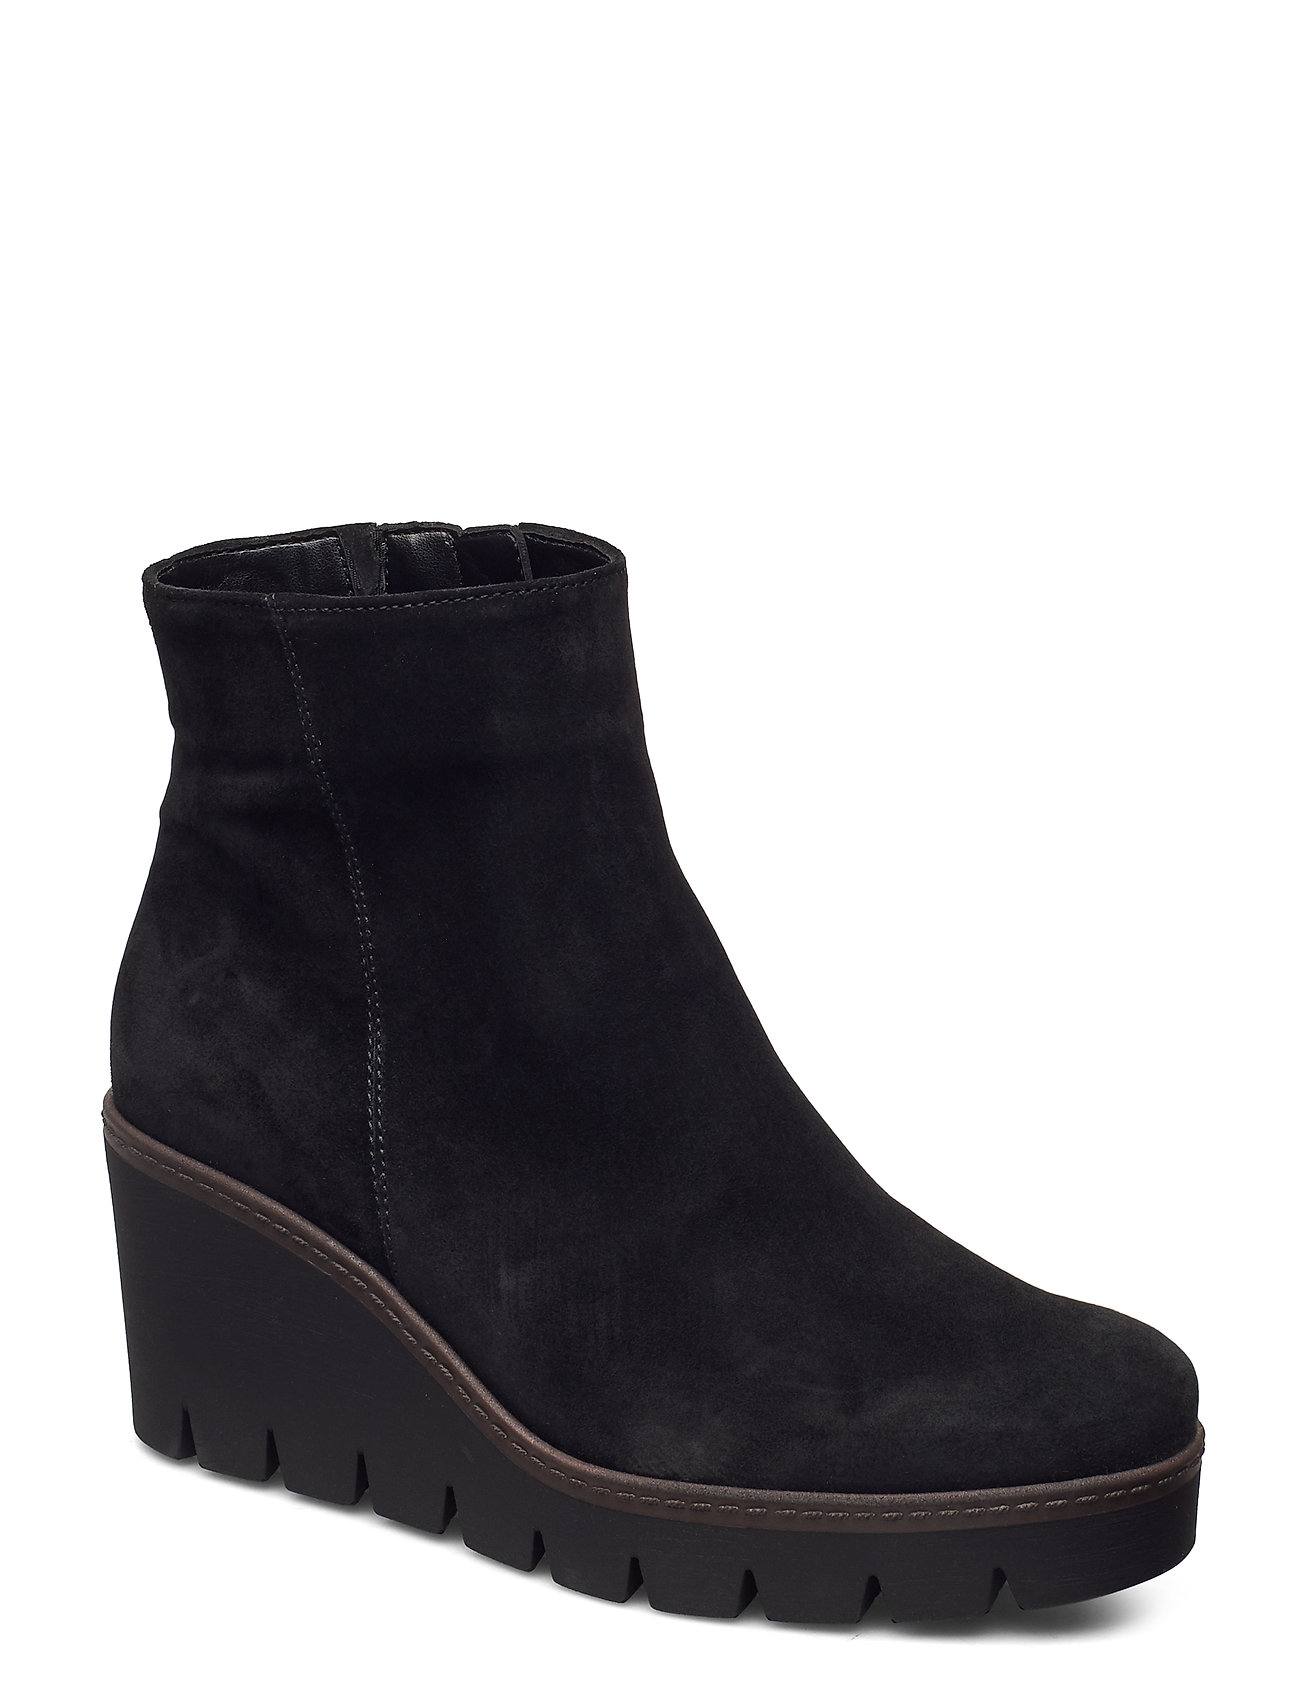 Image of Ankle Boot Shoes Boots Ankle Boots Ankle Boot - Heel Sort Gabor (3445903711)